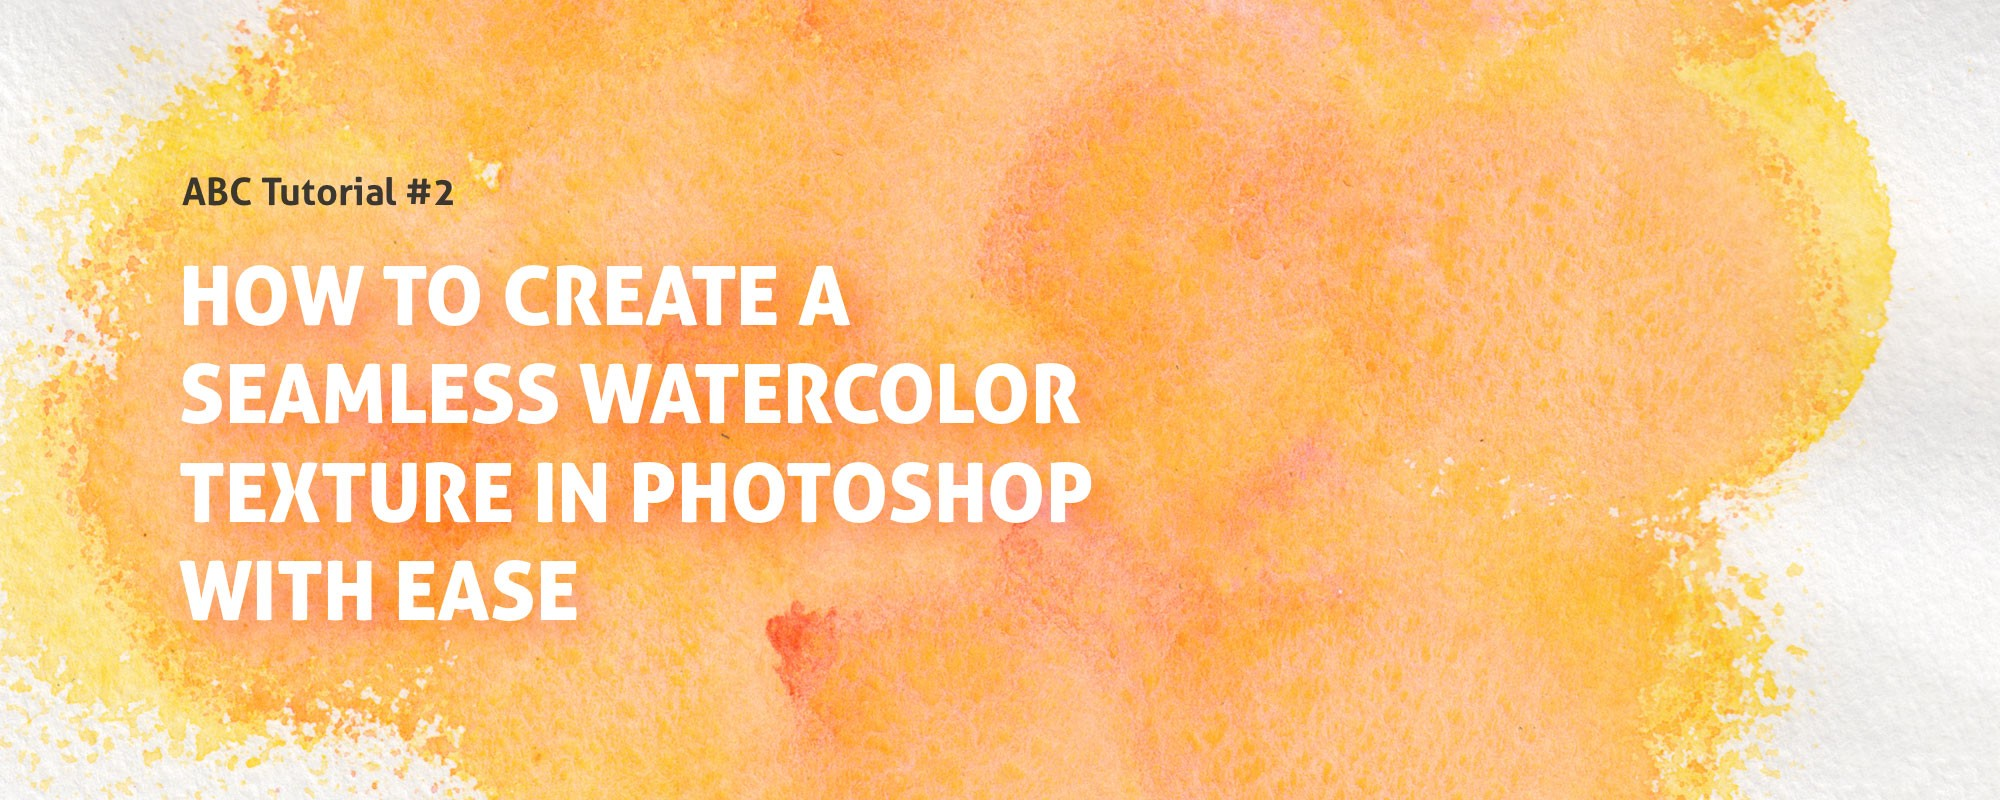 How To Create A Seamless Watercolor Texture In Photoshop With Ease By Tatiana Lapina Creative Veila Medium